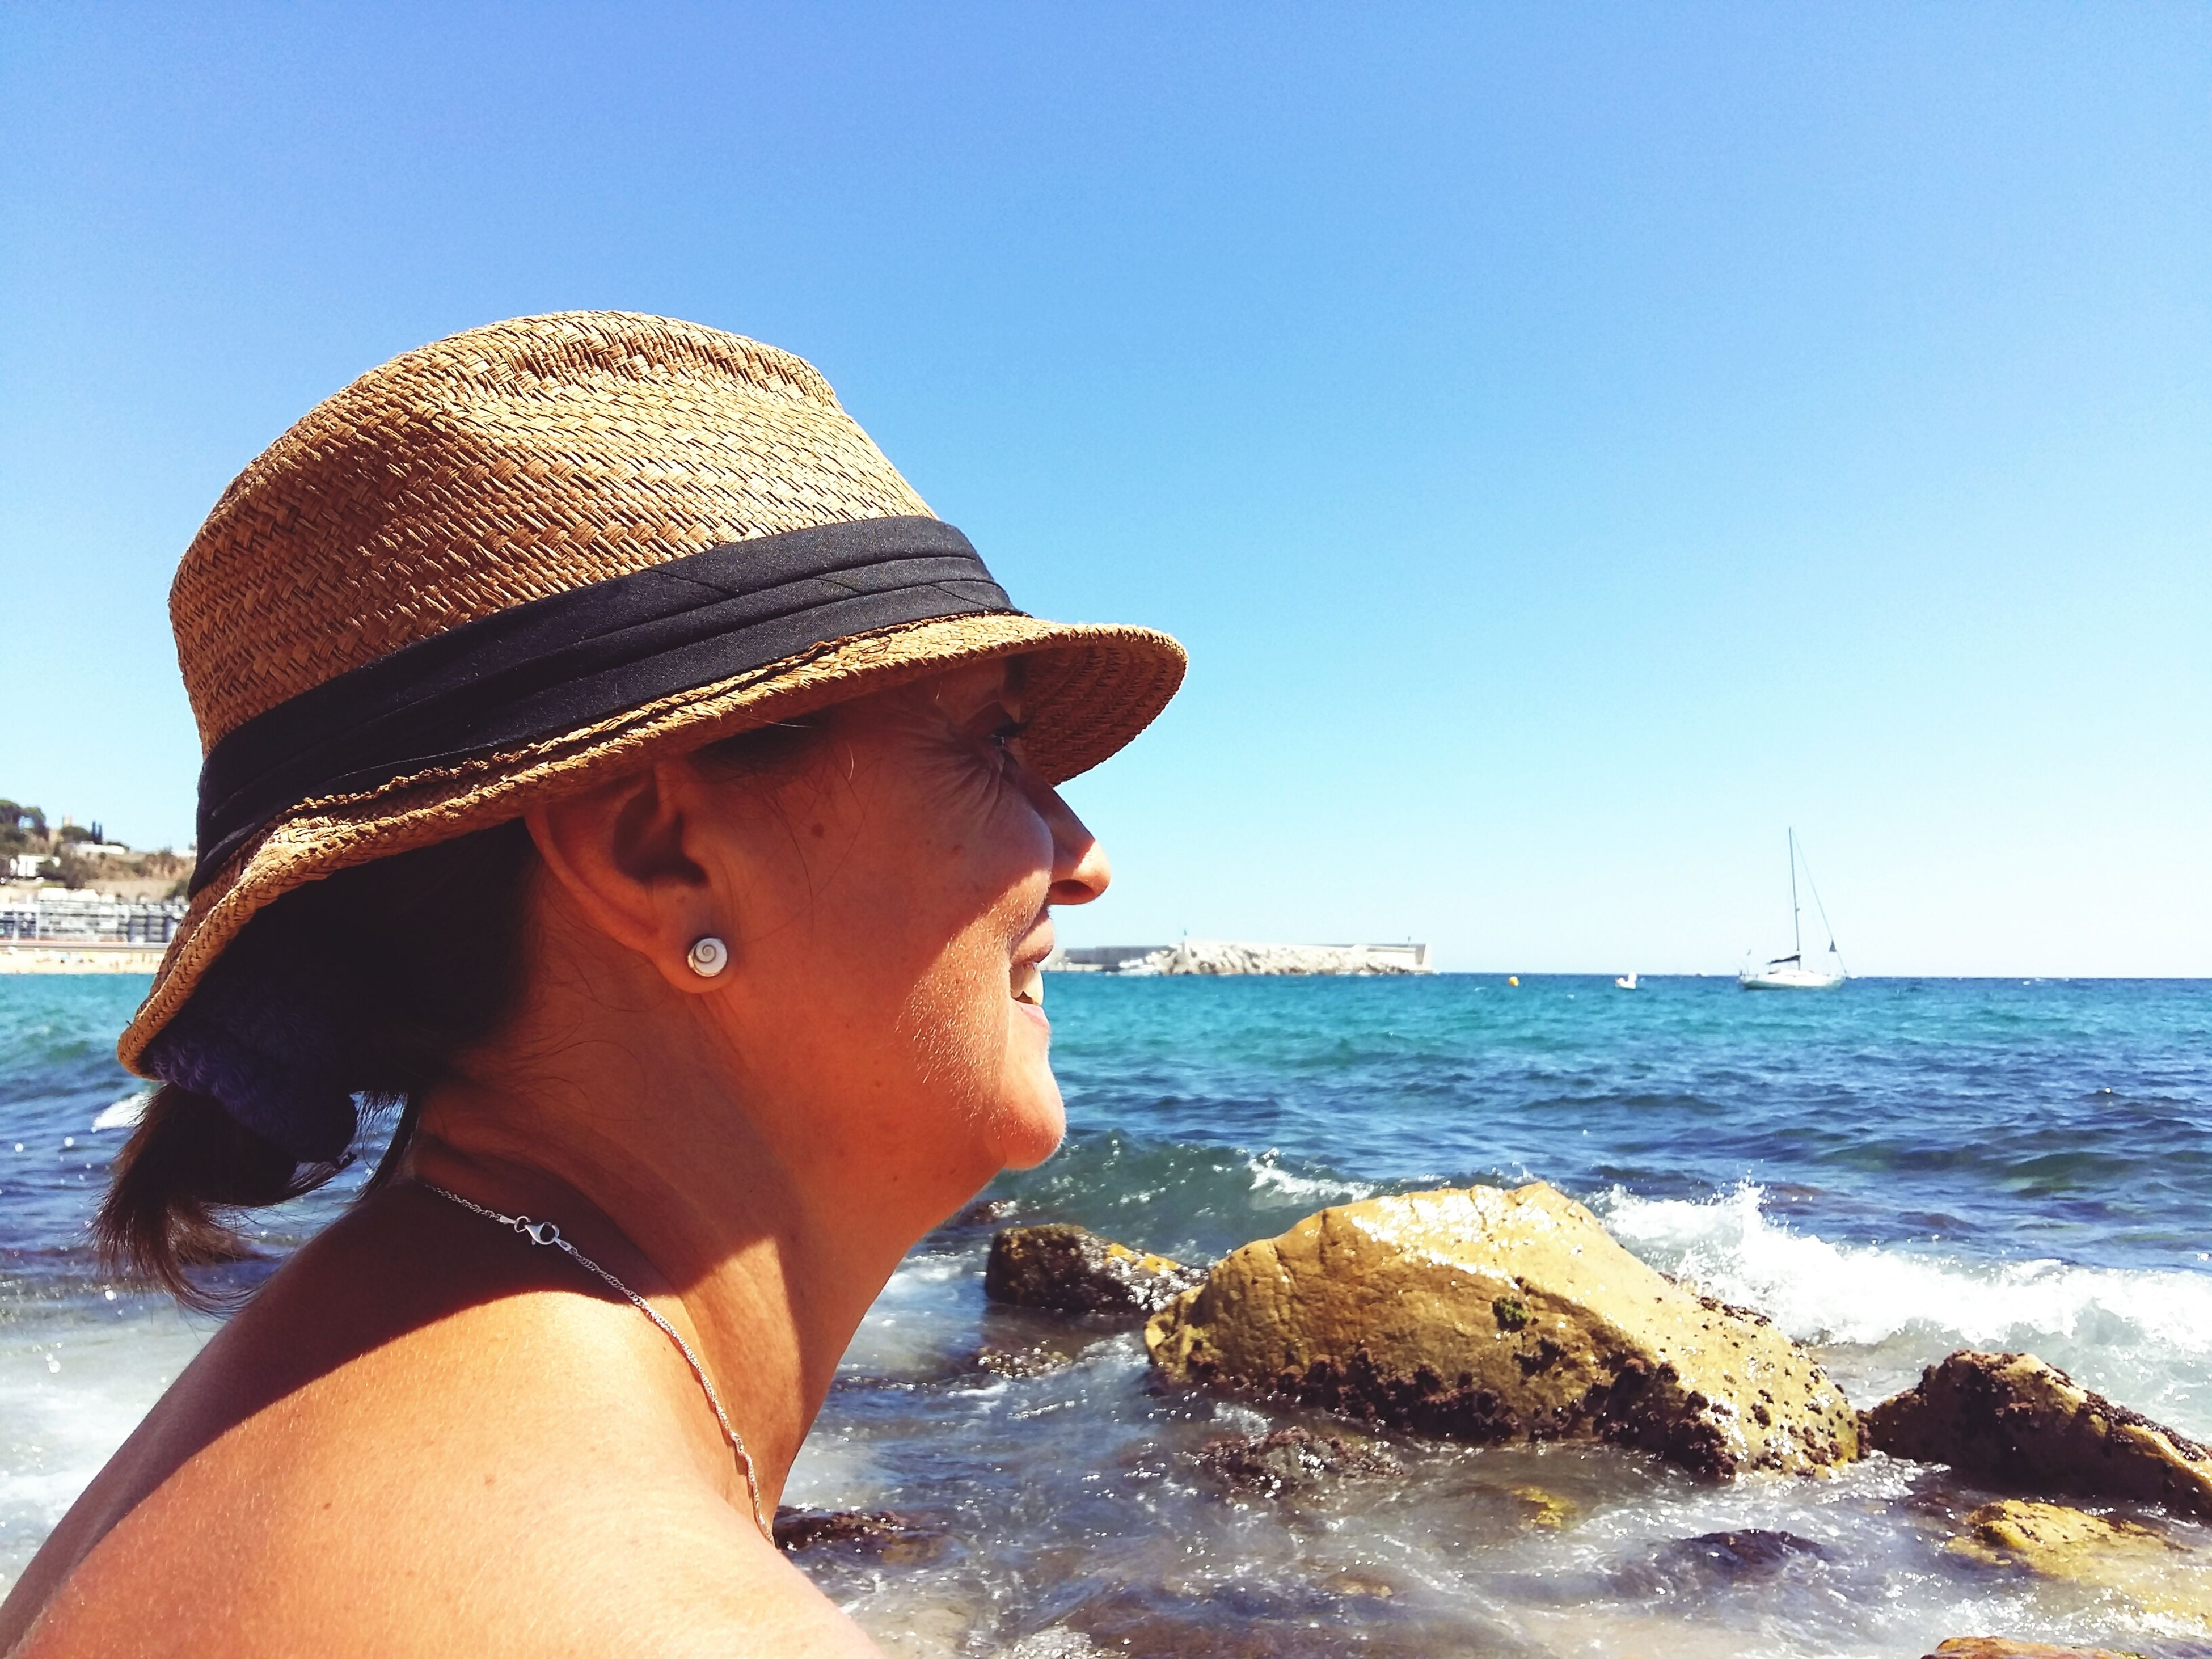 sea, clear sky, hat, water, lifestyles, horizon over water, headshot, sunlight, leisure activity, scenics, vacations, sunglasses, sunny, getting away from it all, beauty in nature, tranquil scene, knit hat, one mid adult man only, nature, tranquility, long hair, wave, young adult, day, blue, outdoors, in front of